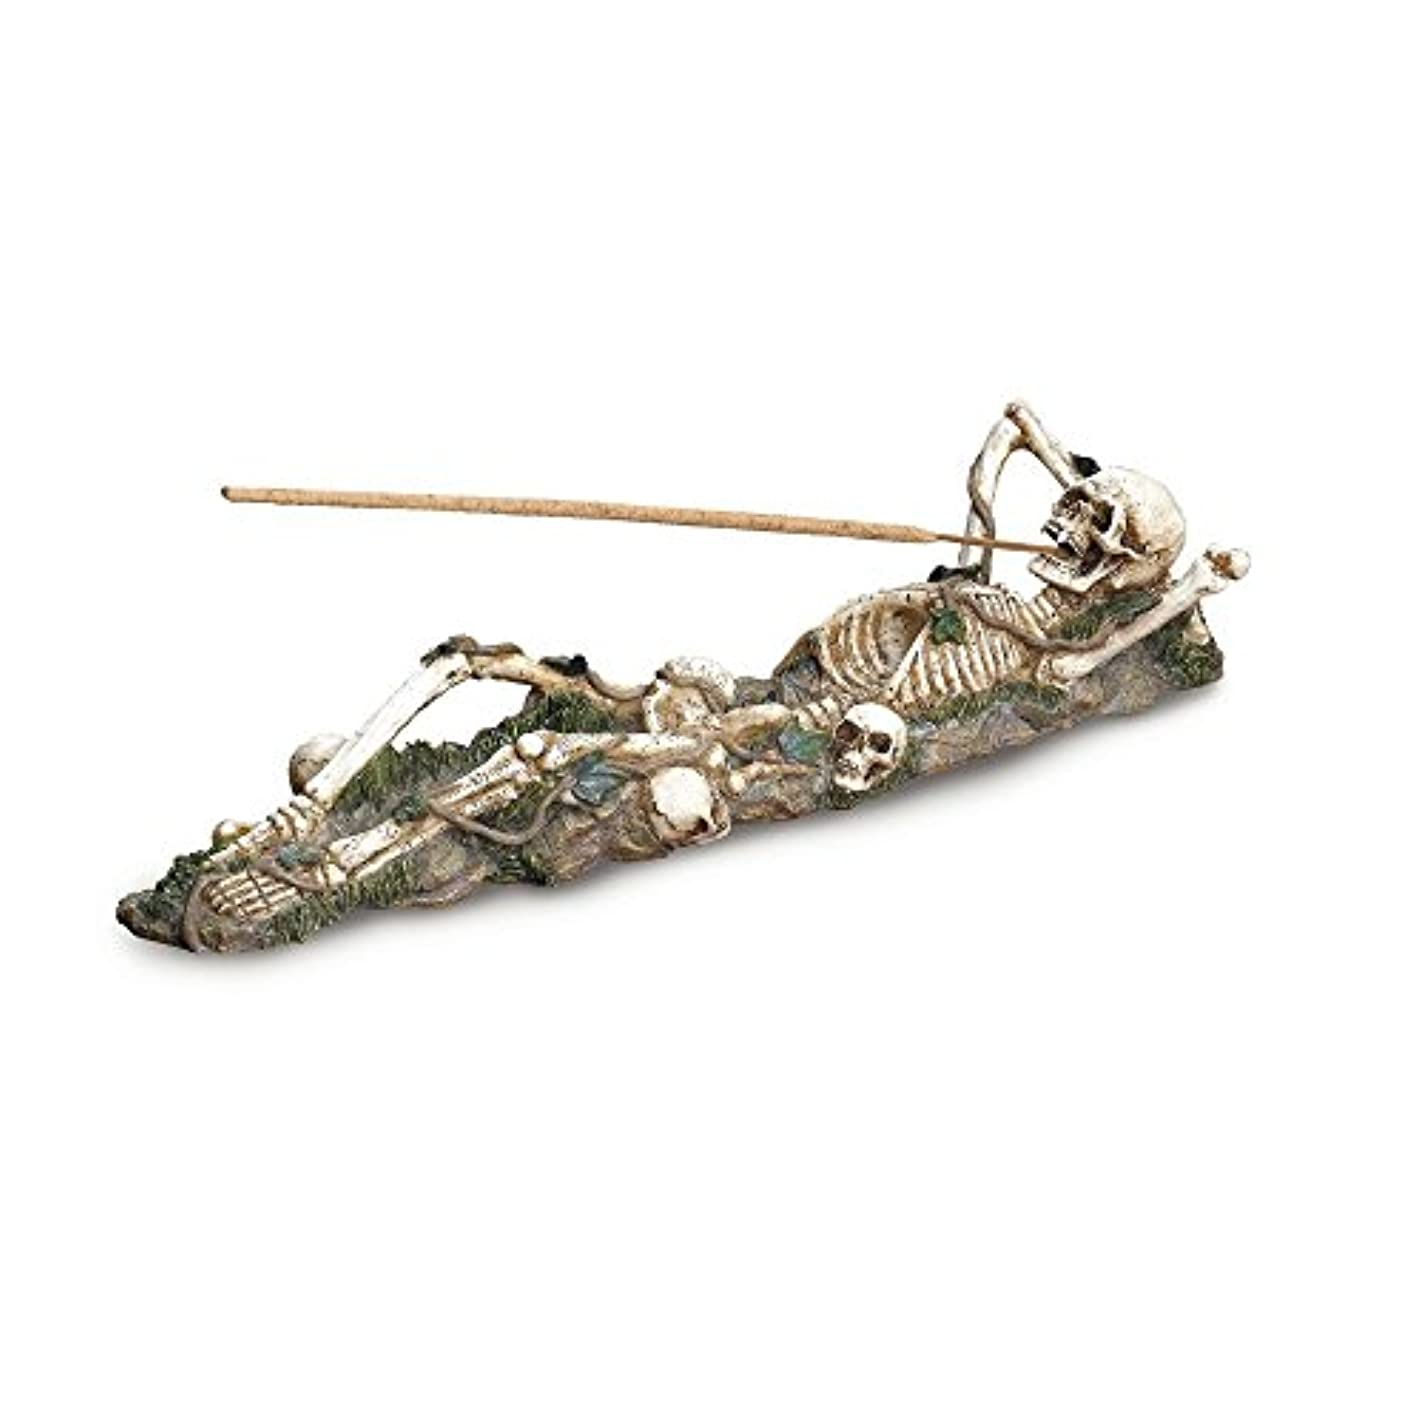 機械的豊富に取り組むGifts & Decor Skeleton Incense Burner Holder Collector Halloween Gift by Gifts & Decor